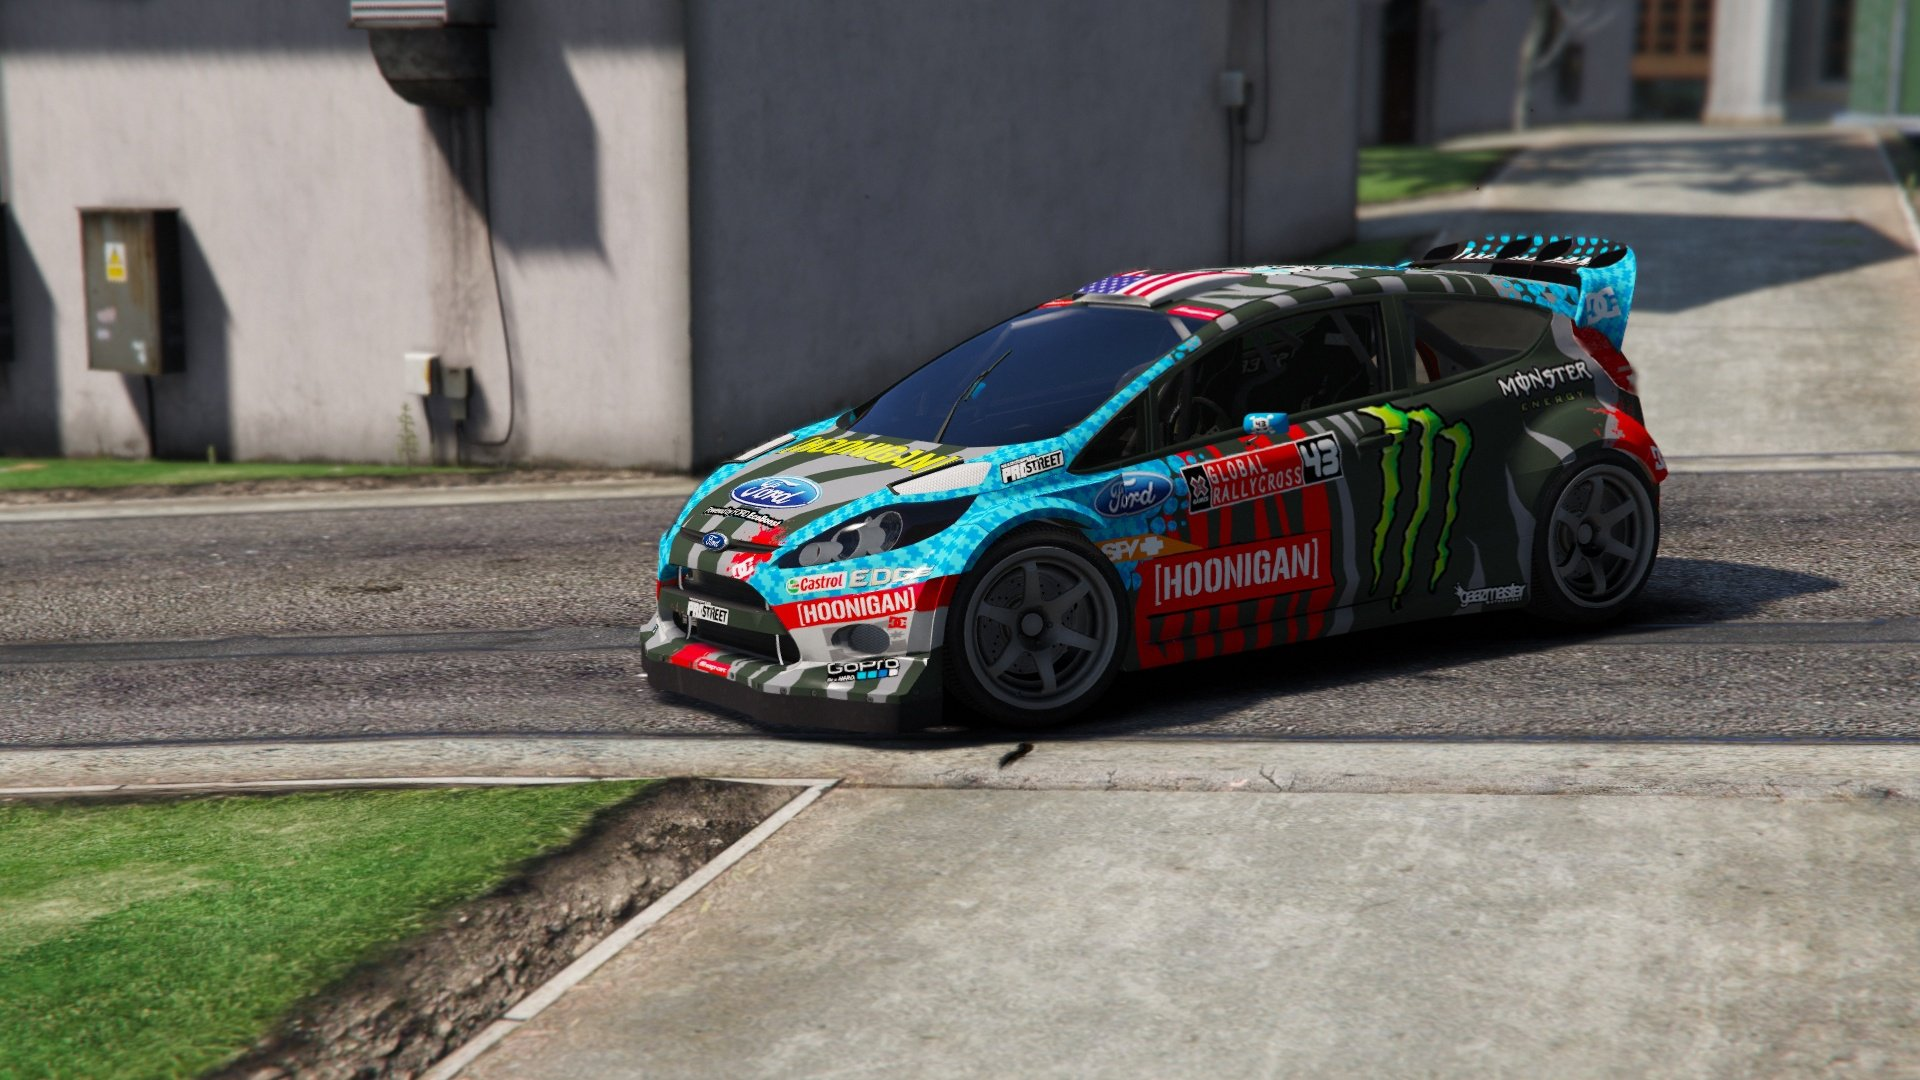 ford fiesta ken block vehicules pour gta v sur gta modding. Black Bedroom Furniture Sets. Home Design Ideas